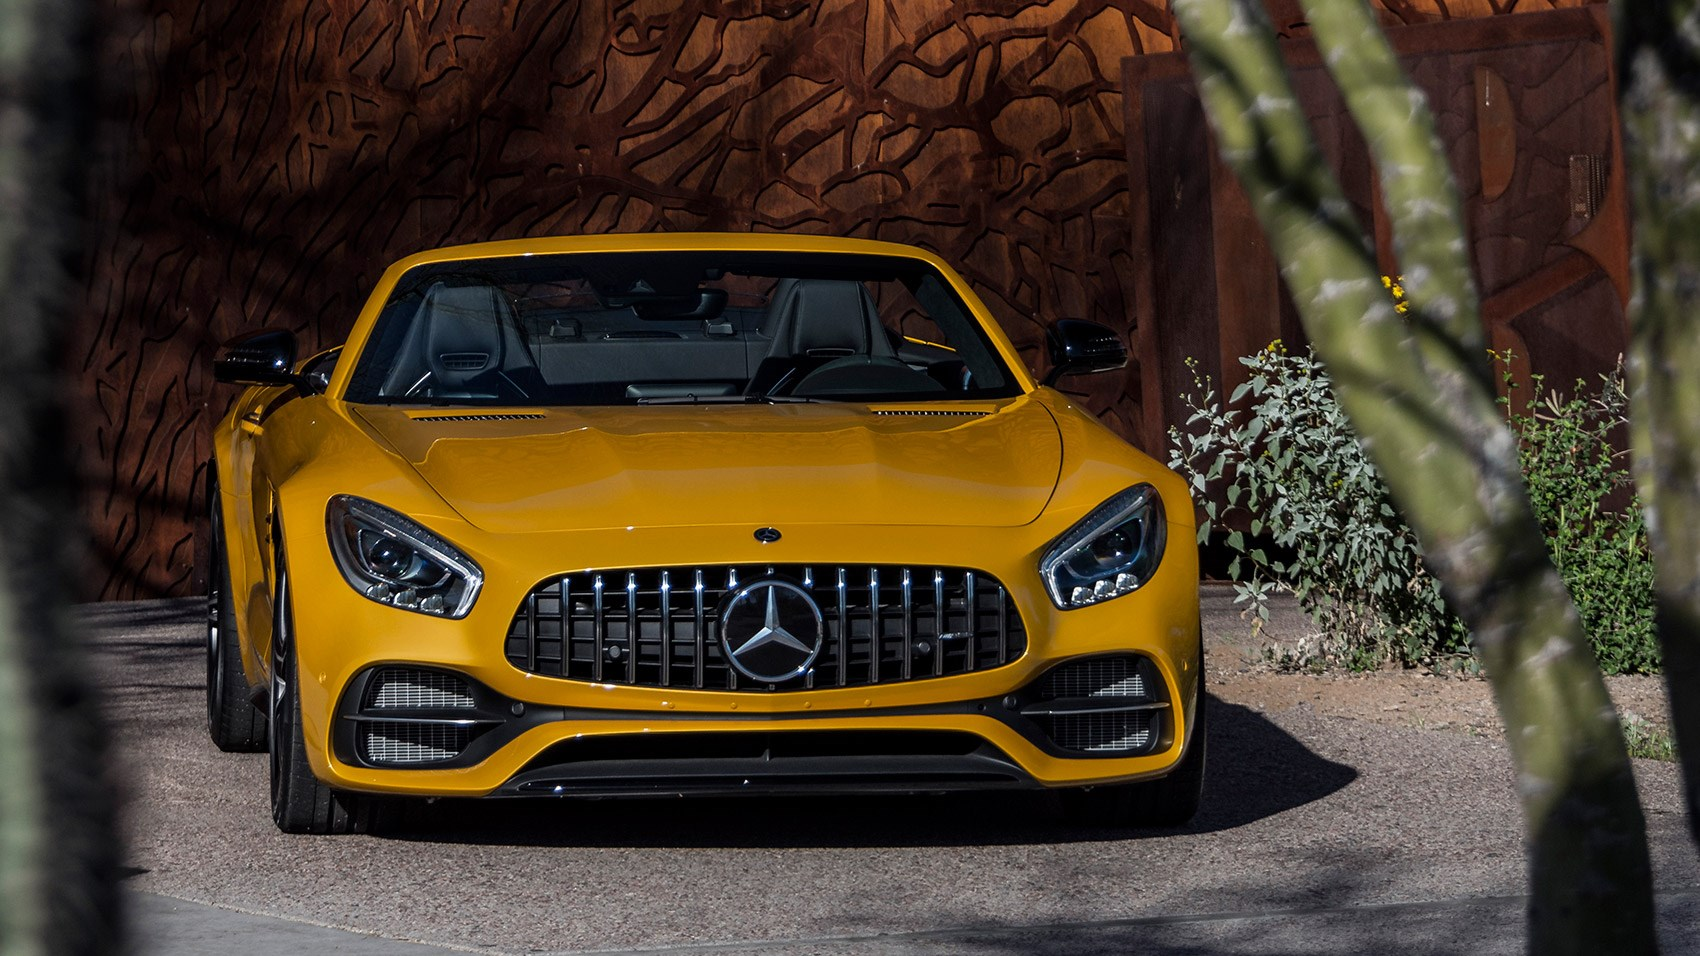 Mercedes Amg Gt C Roadster 2017 Mercedes Amg Gt C Roadster 2017 Uk Road Test Review Car Magazine